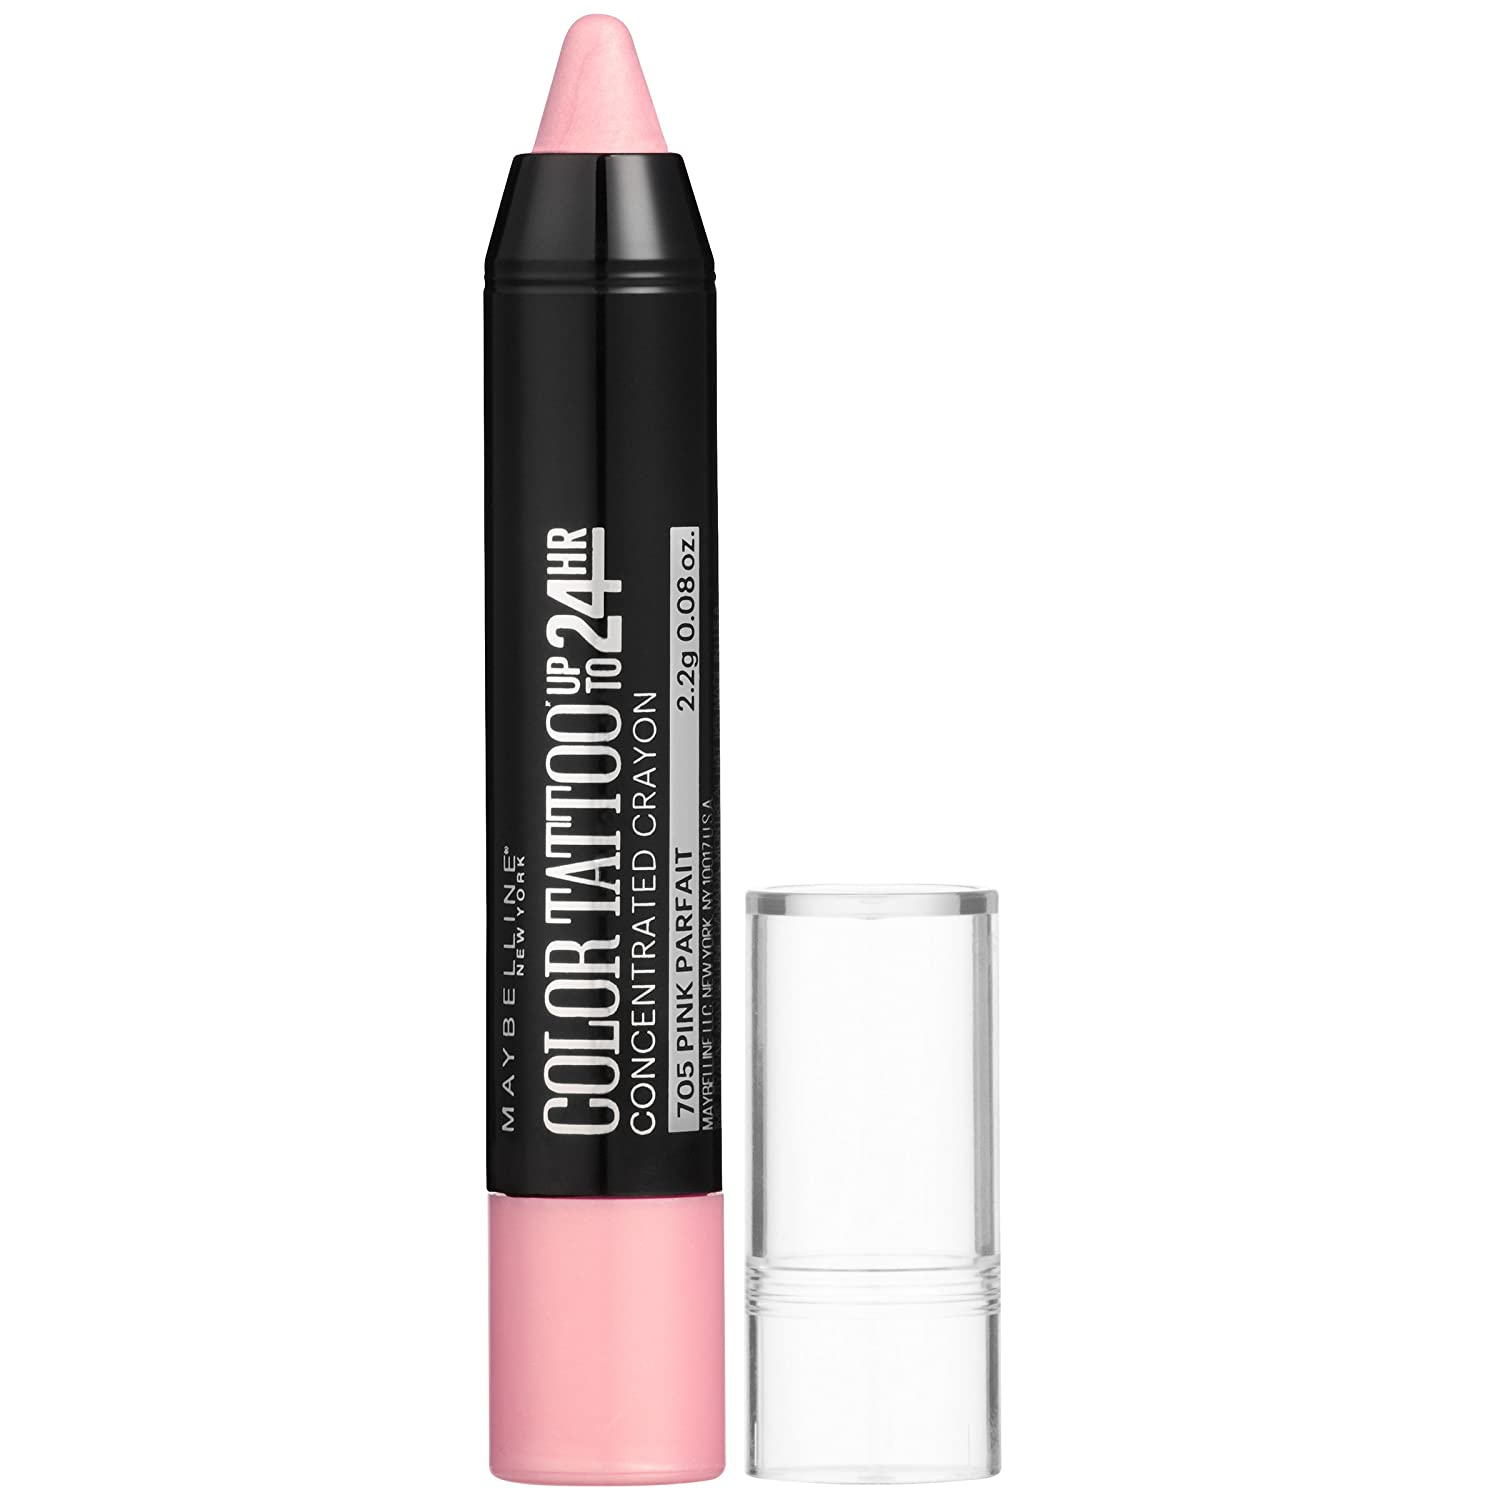 Maybelline New York Eyestudio Color Tattoo Concentrated Crayon Eye Color, Pink Parfait, 0.08 Ounce